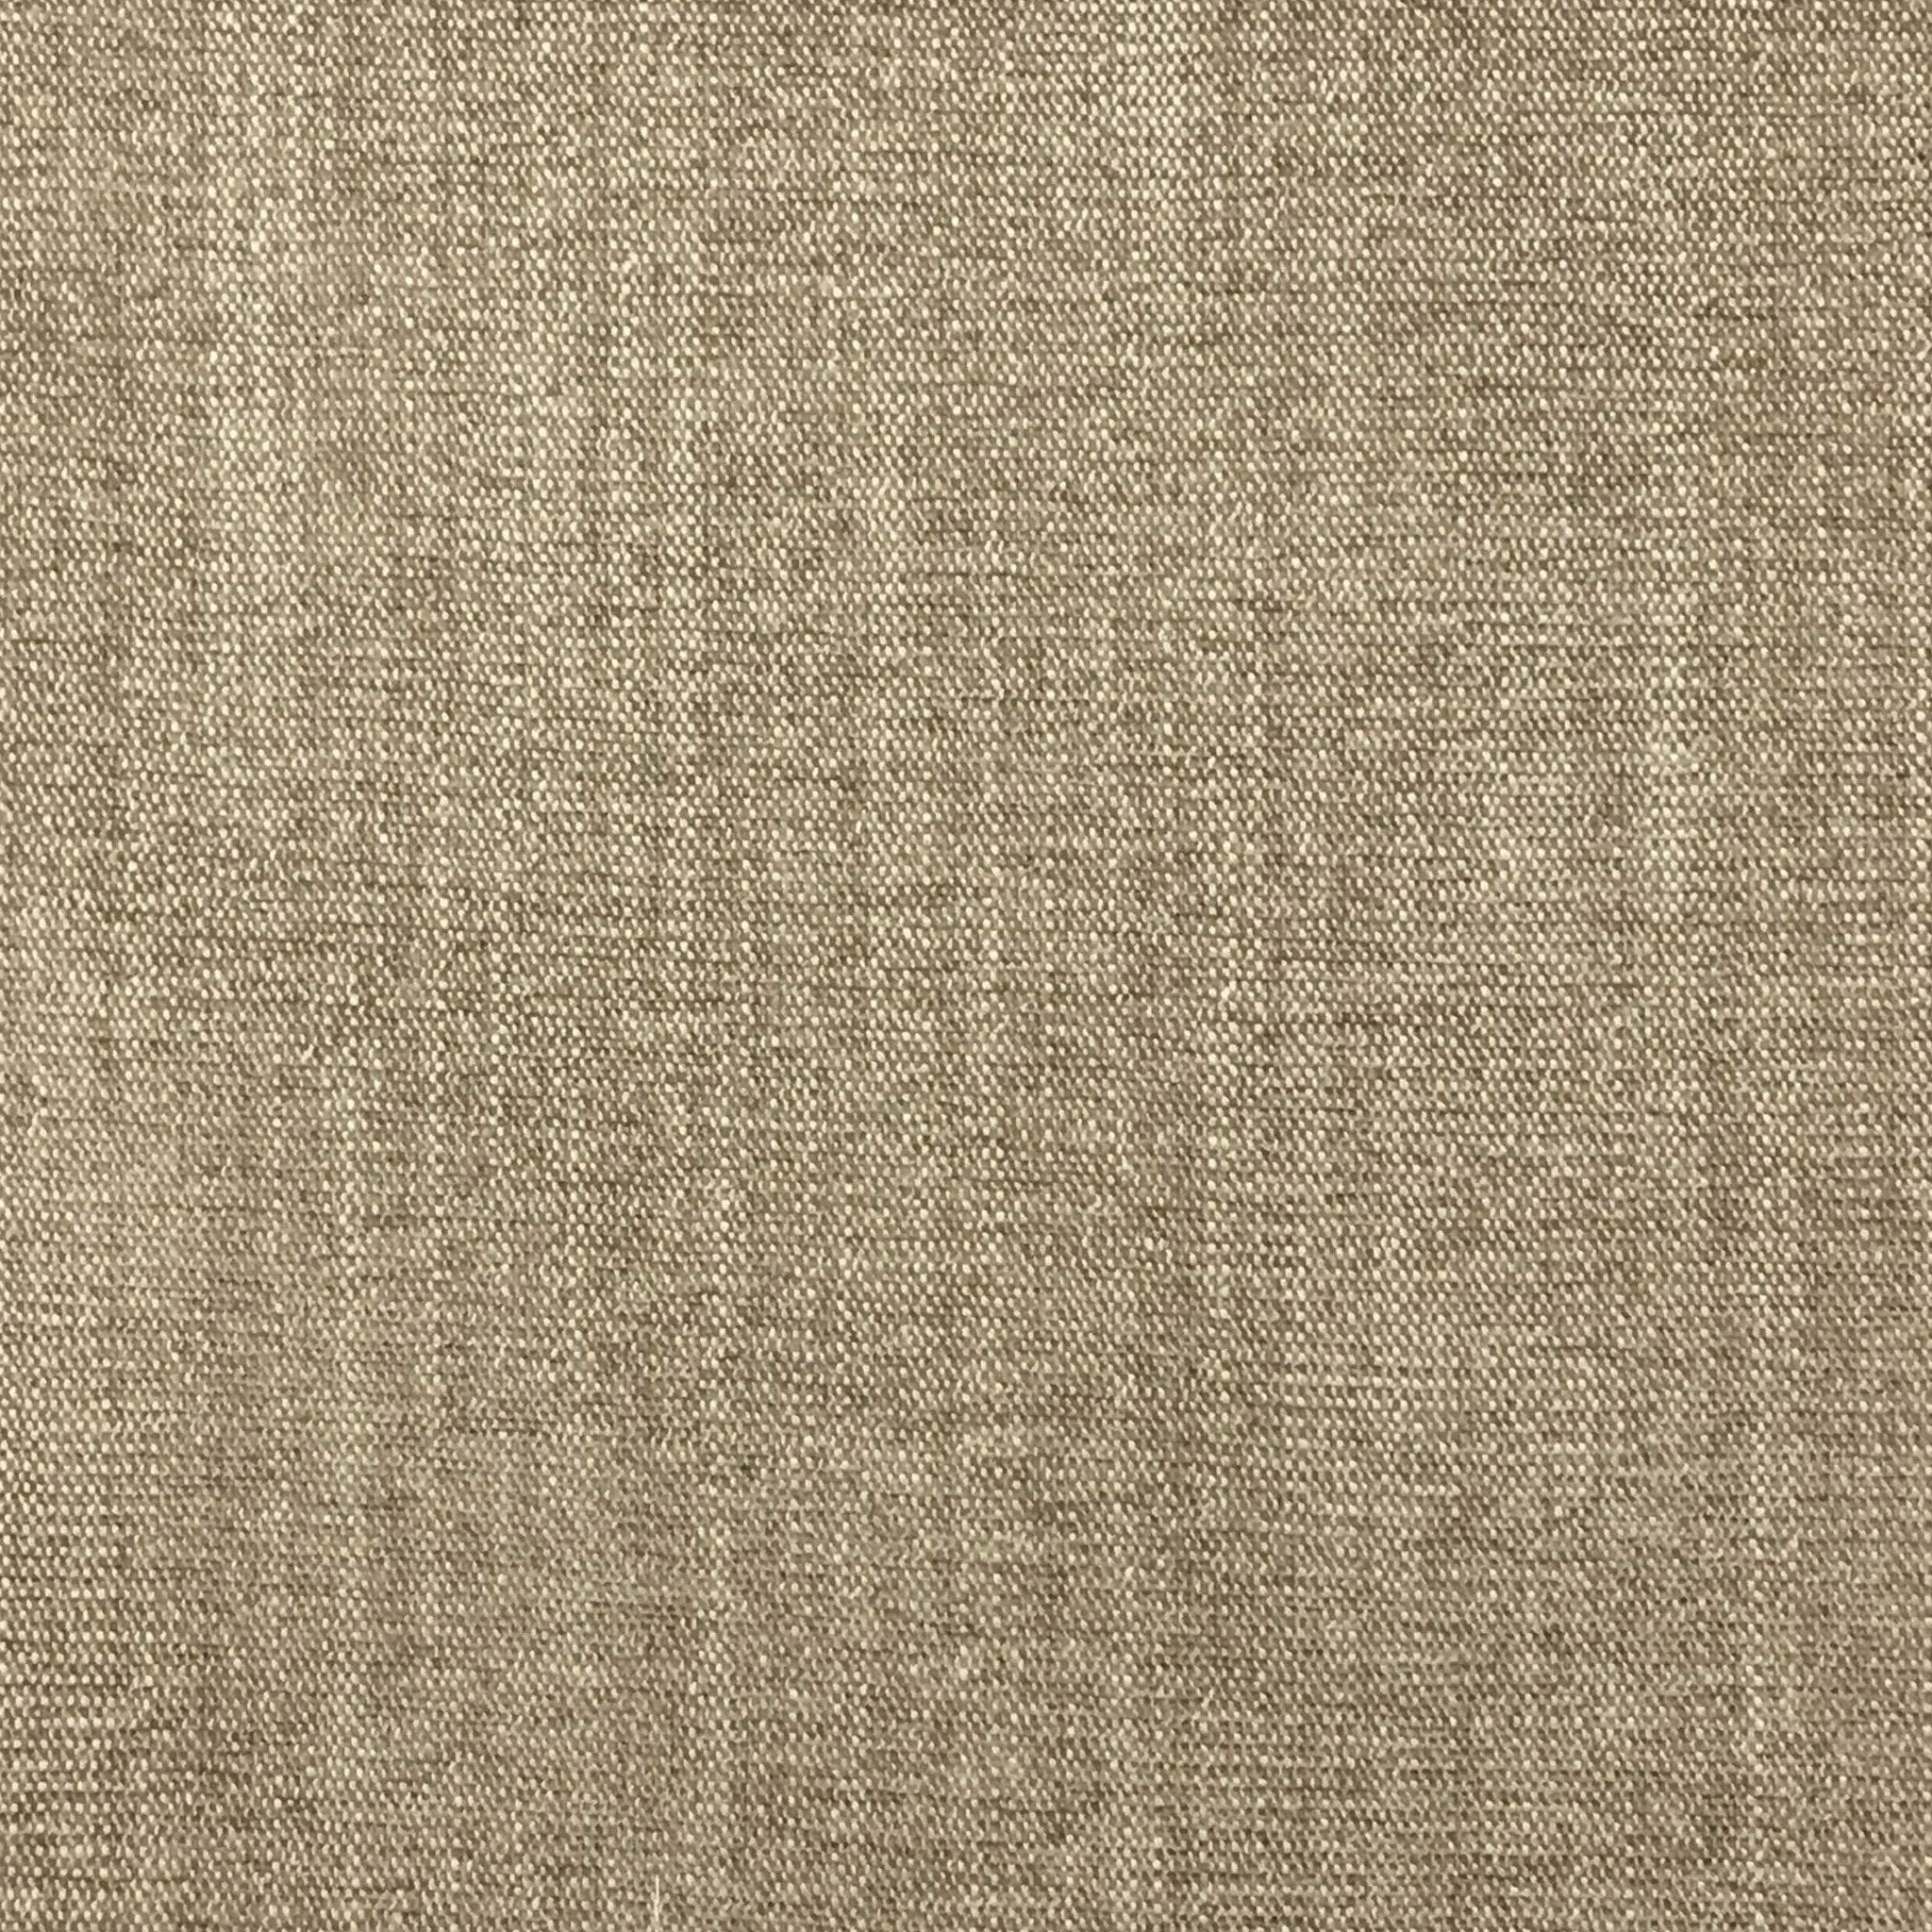 Bronson Linen Blend Textured Chenille Upholstery Fabric By The Yard